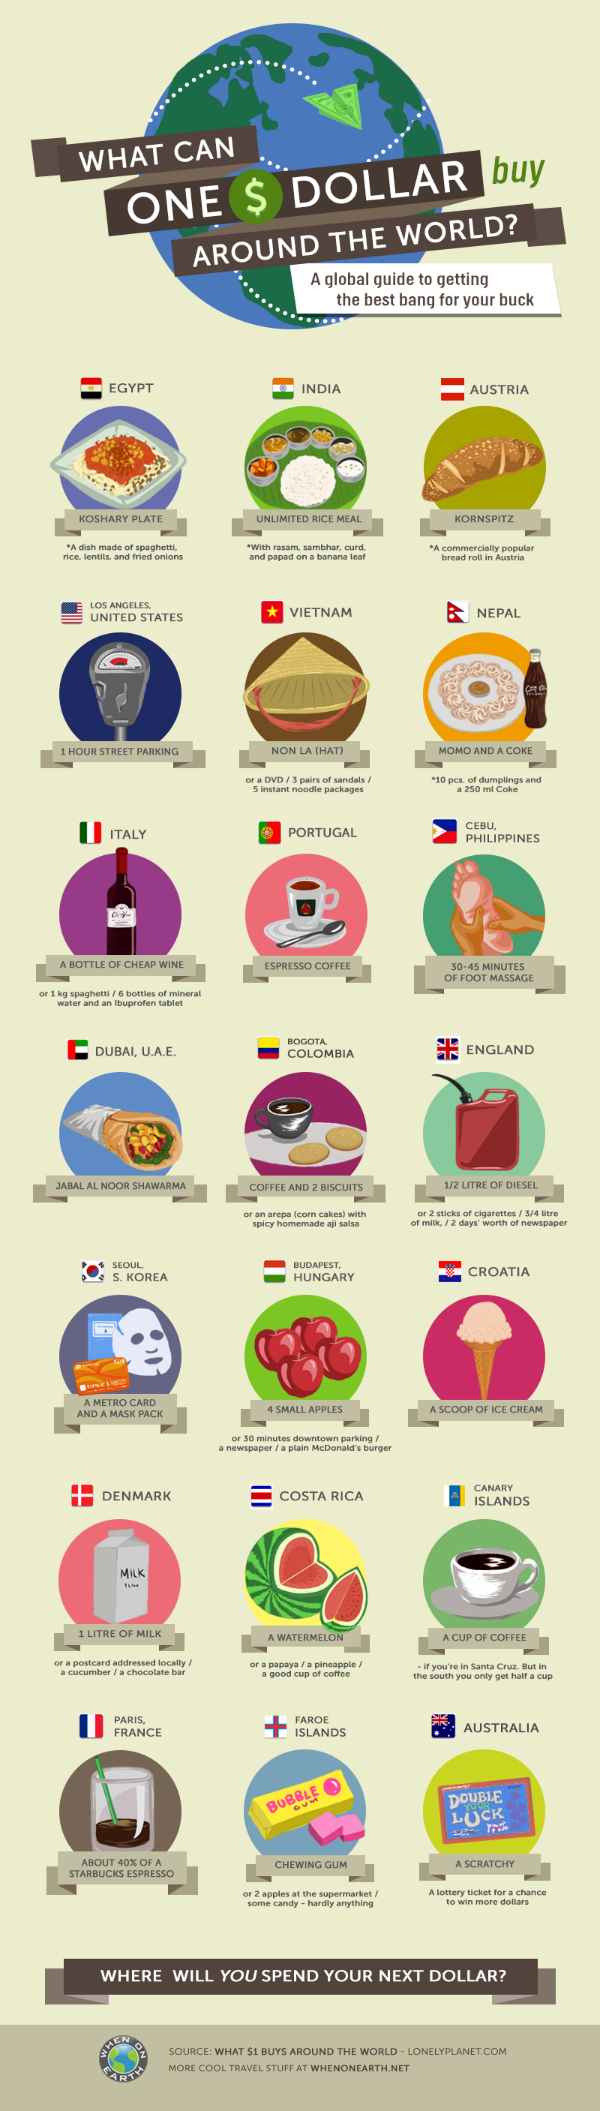 What-can-one-dollar-buy-around-the-world-11